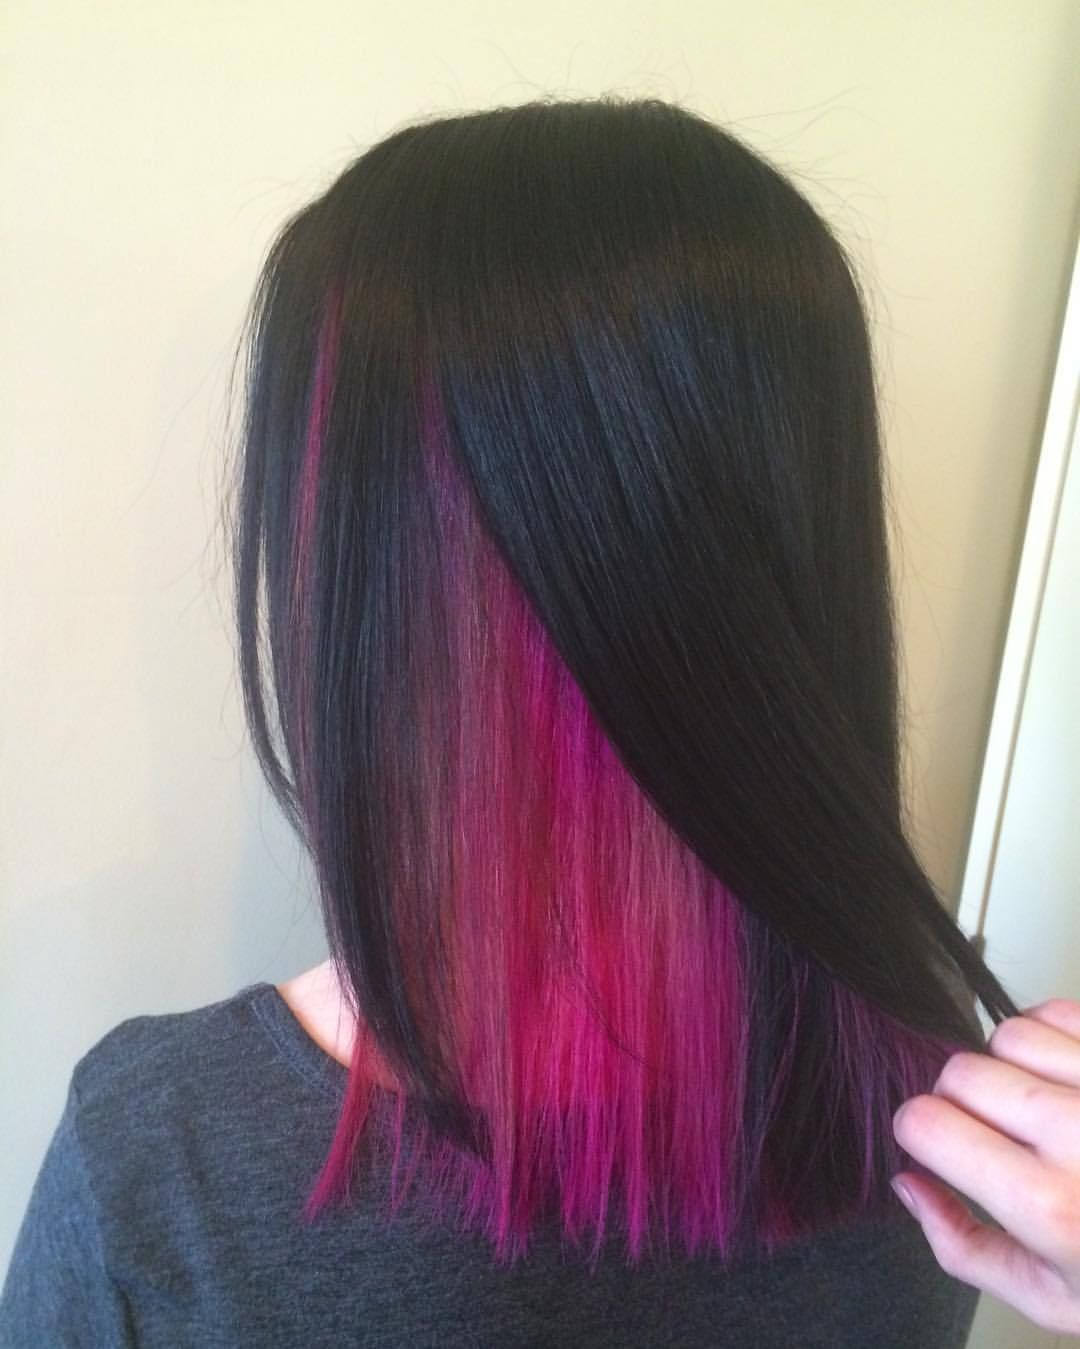 Hairsmart Revealing The Magical Magenta Under Layer At In 2020 Hair Color Streaks Hidden Hair Color Aesthetic Hair